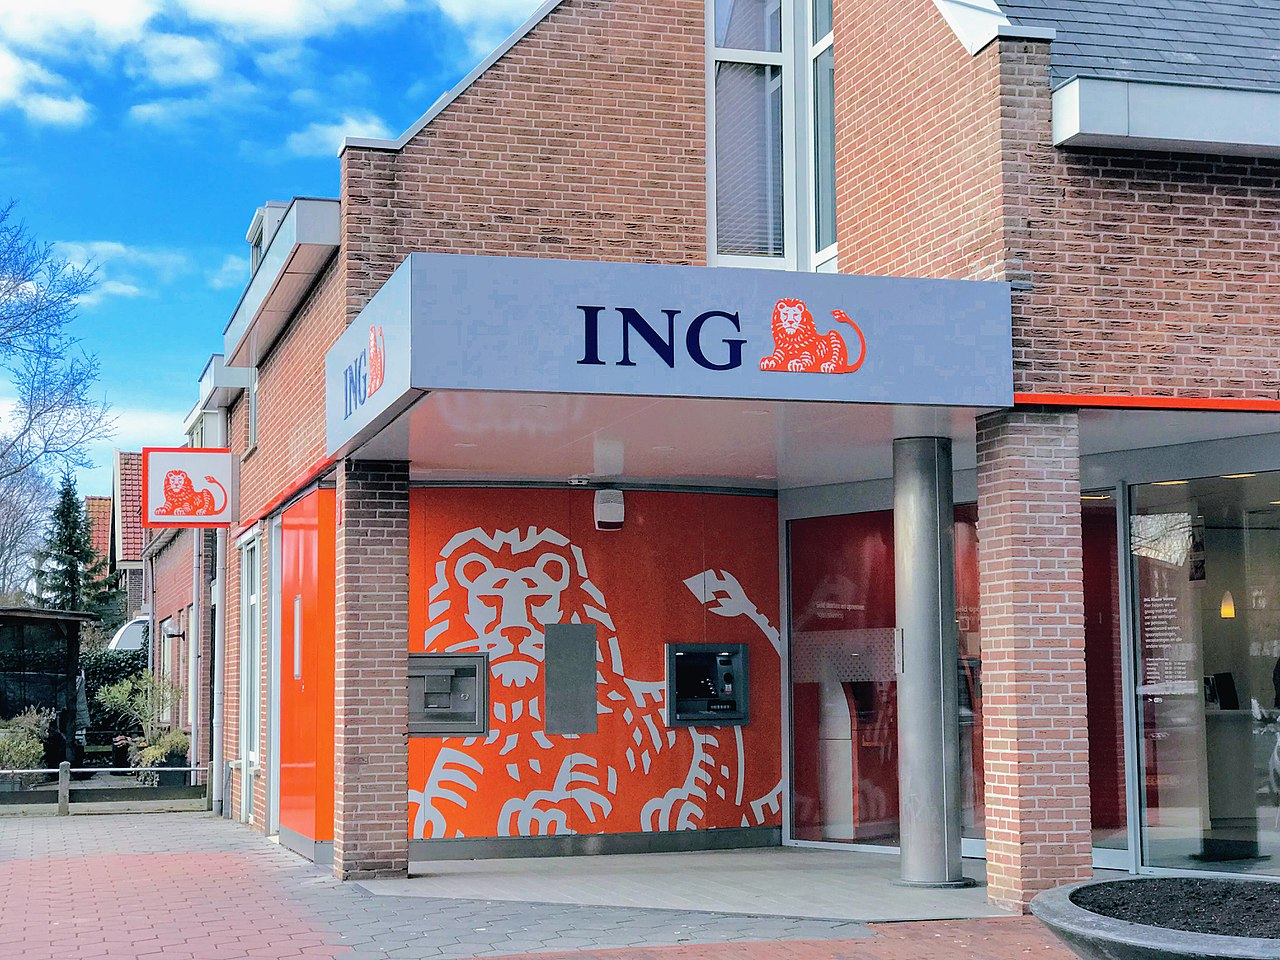 https://en.wikipedia.org/wiki/ING_Group#/media/File:ING_Bank_Nieuw-Vennep.jpg